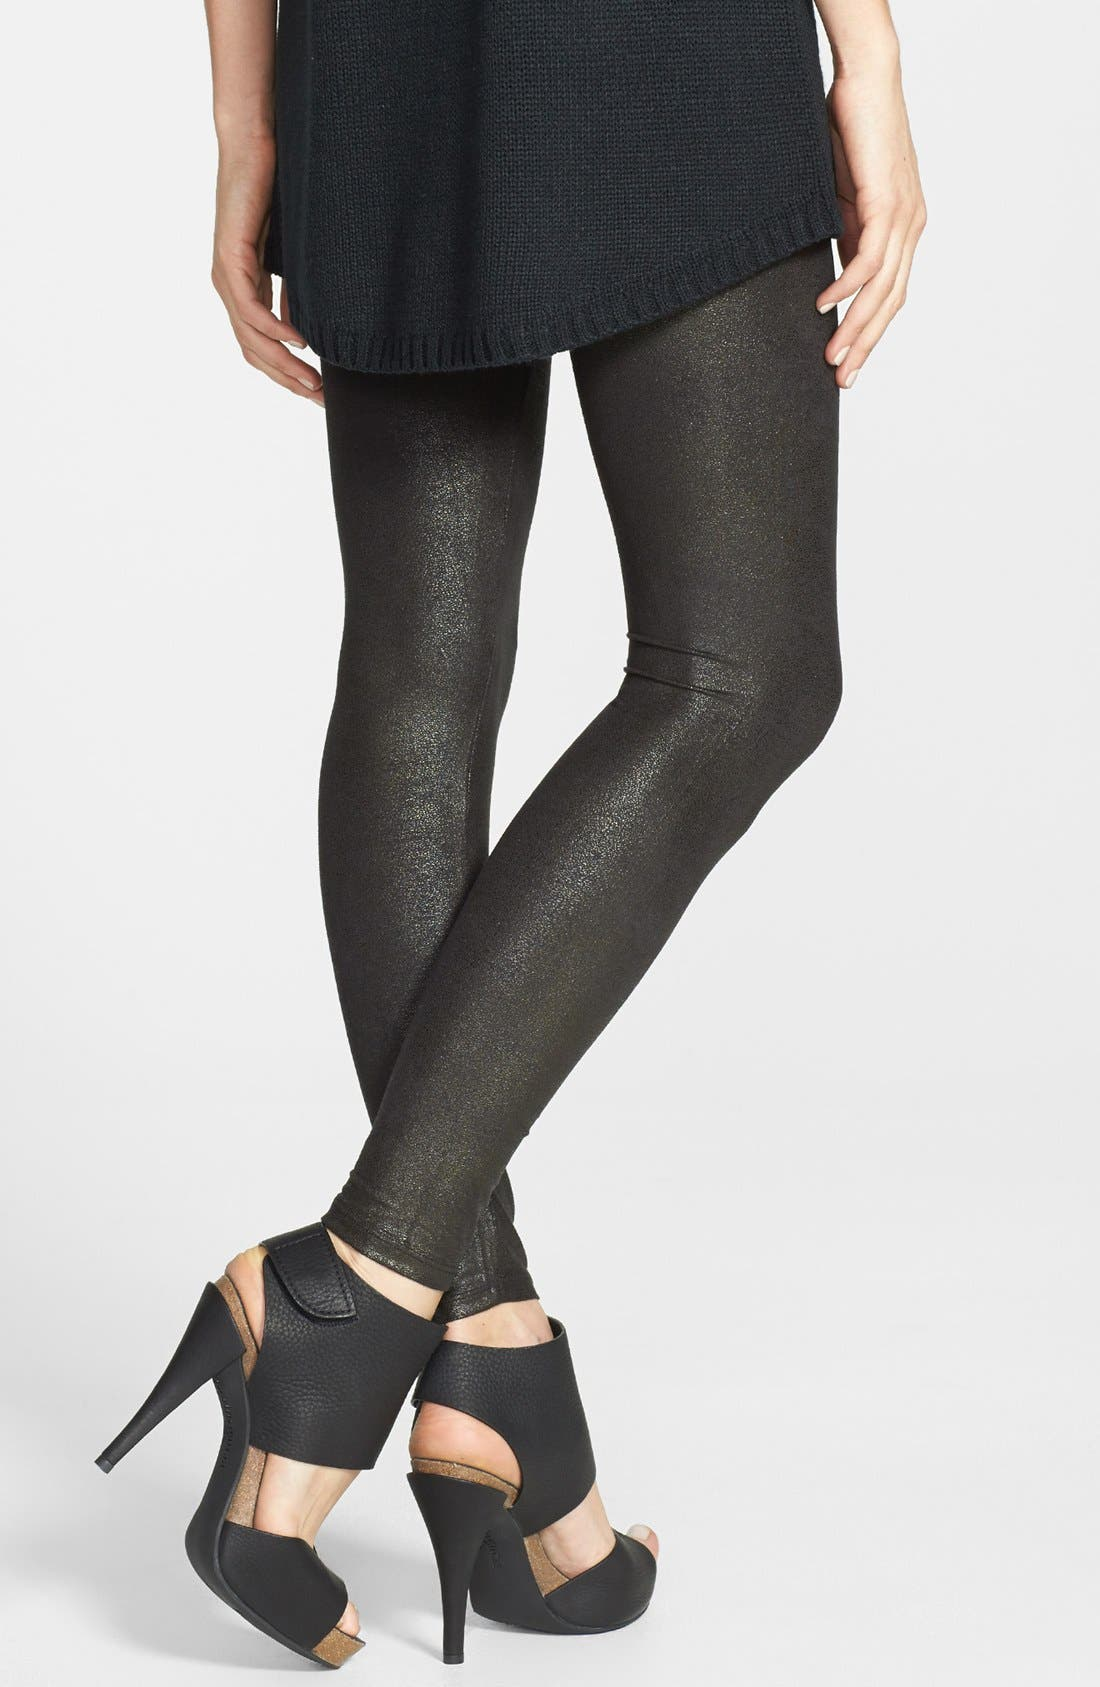 Alternate Image 2  - Yummie by Heather Thomson Faux Leather Shaper Leggings